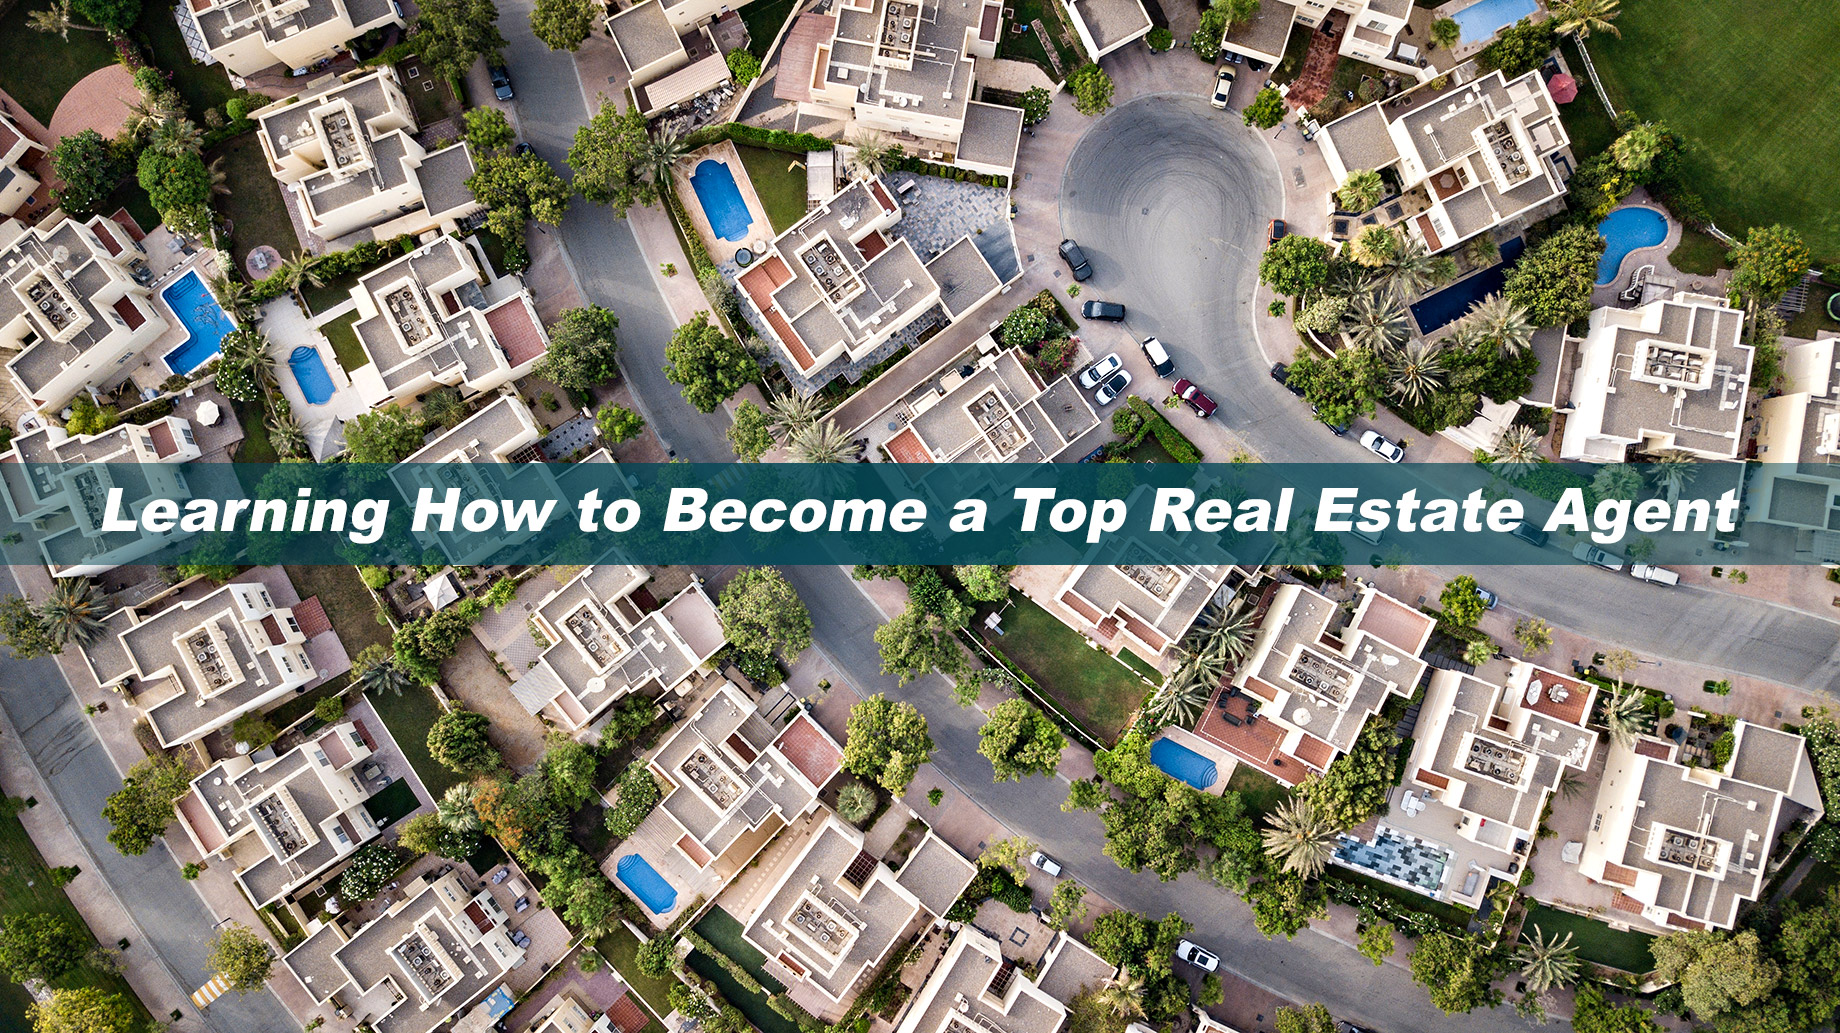 Learning How to Become a Top Real Estate Agent